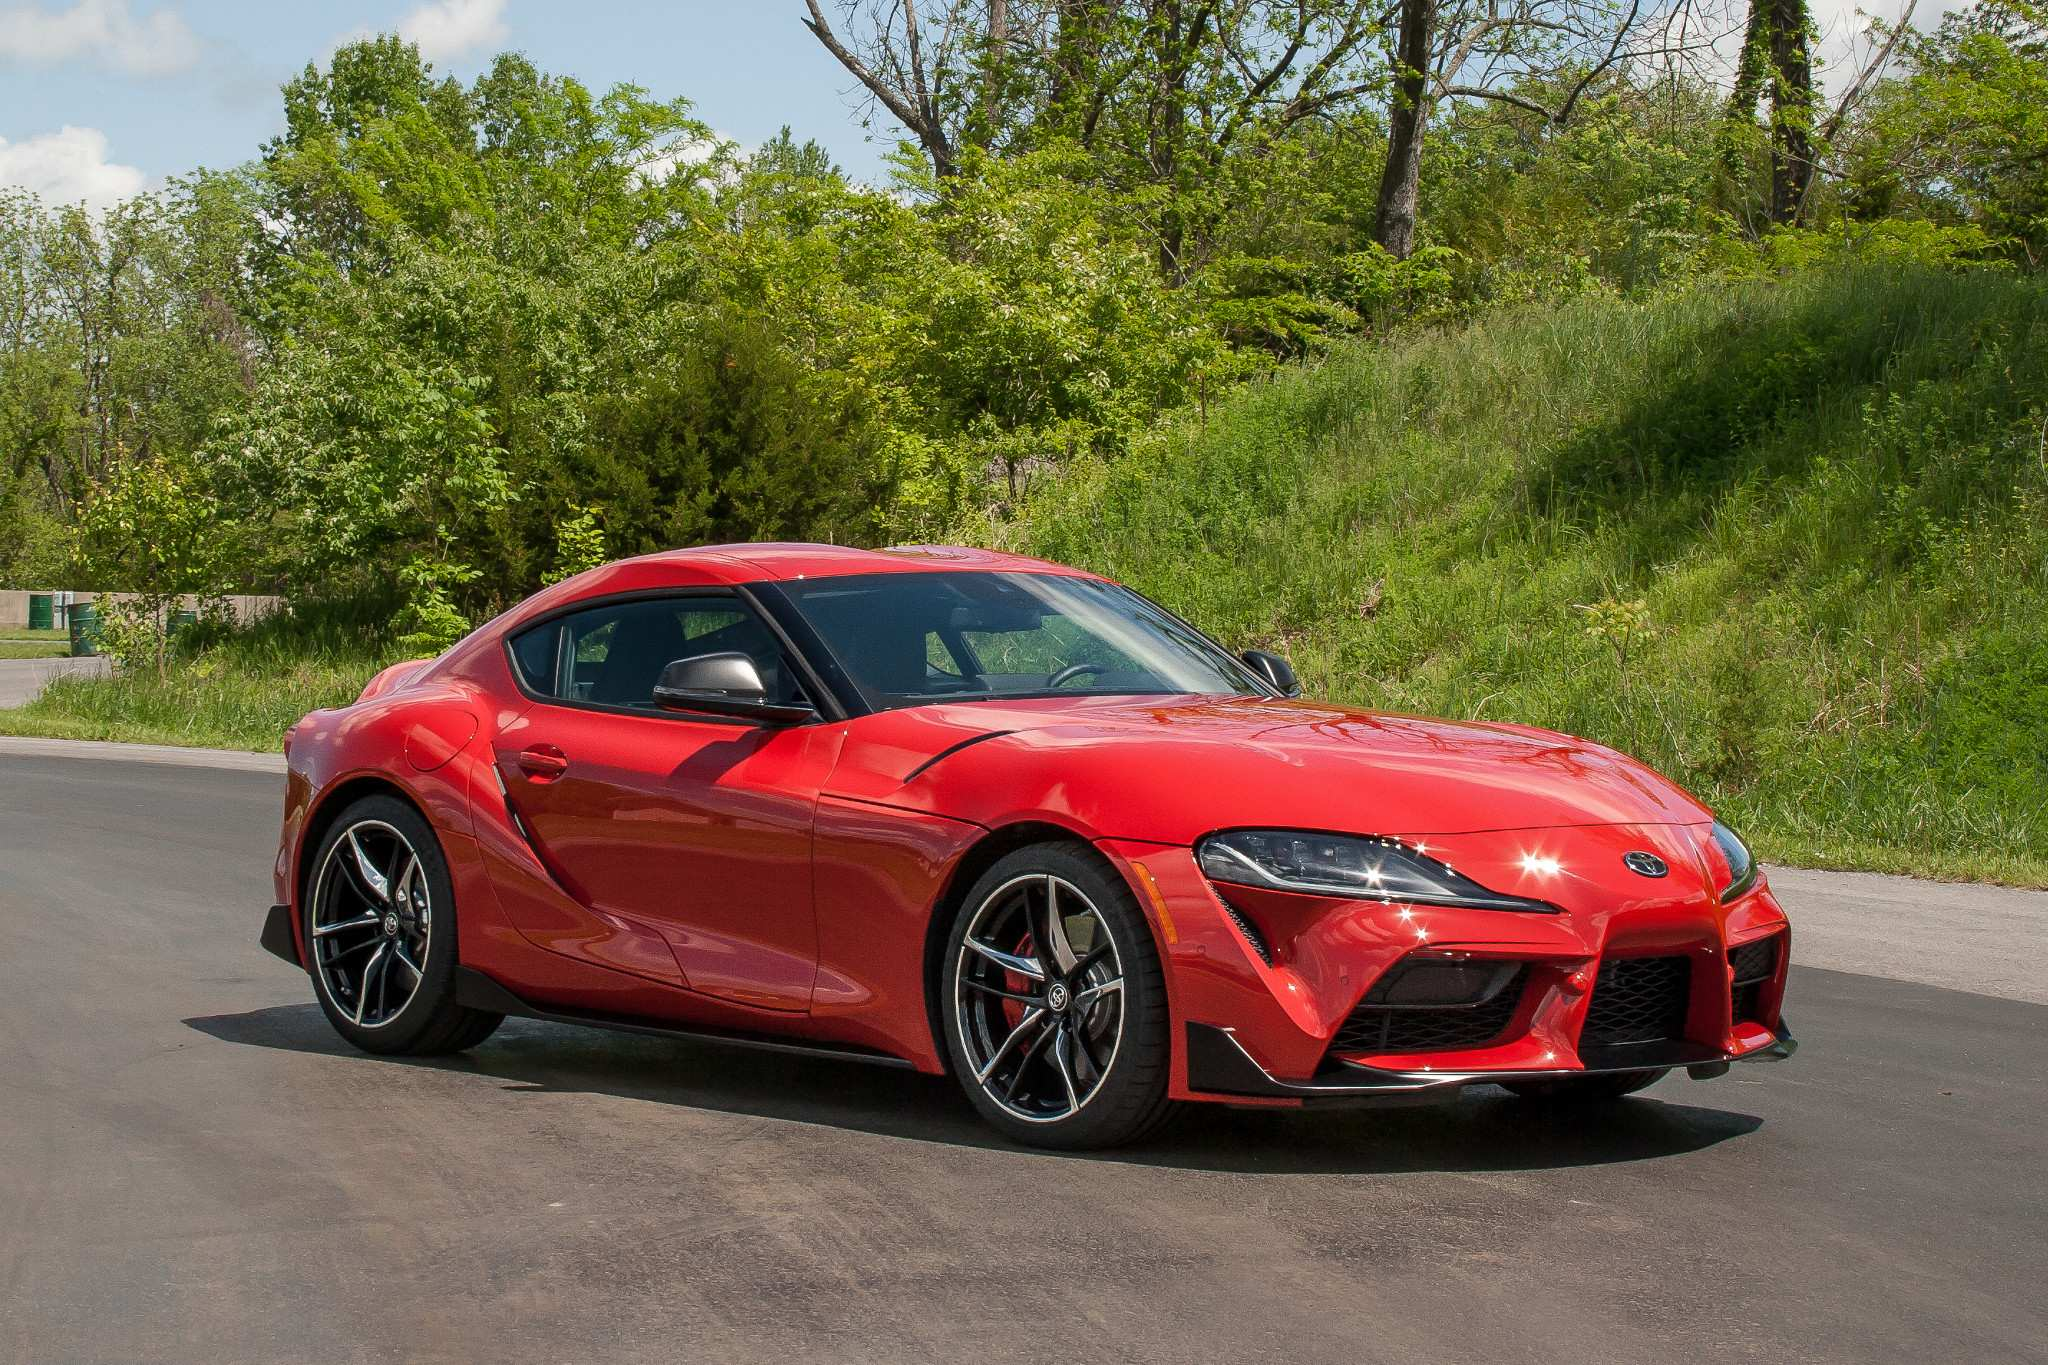 83 New Pictures Of The 2020 Toyota Supra Price And Release Date